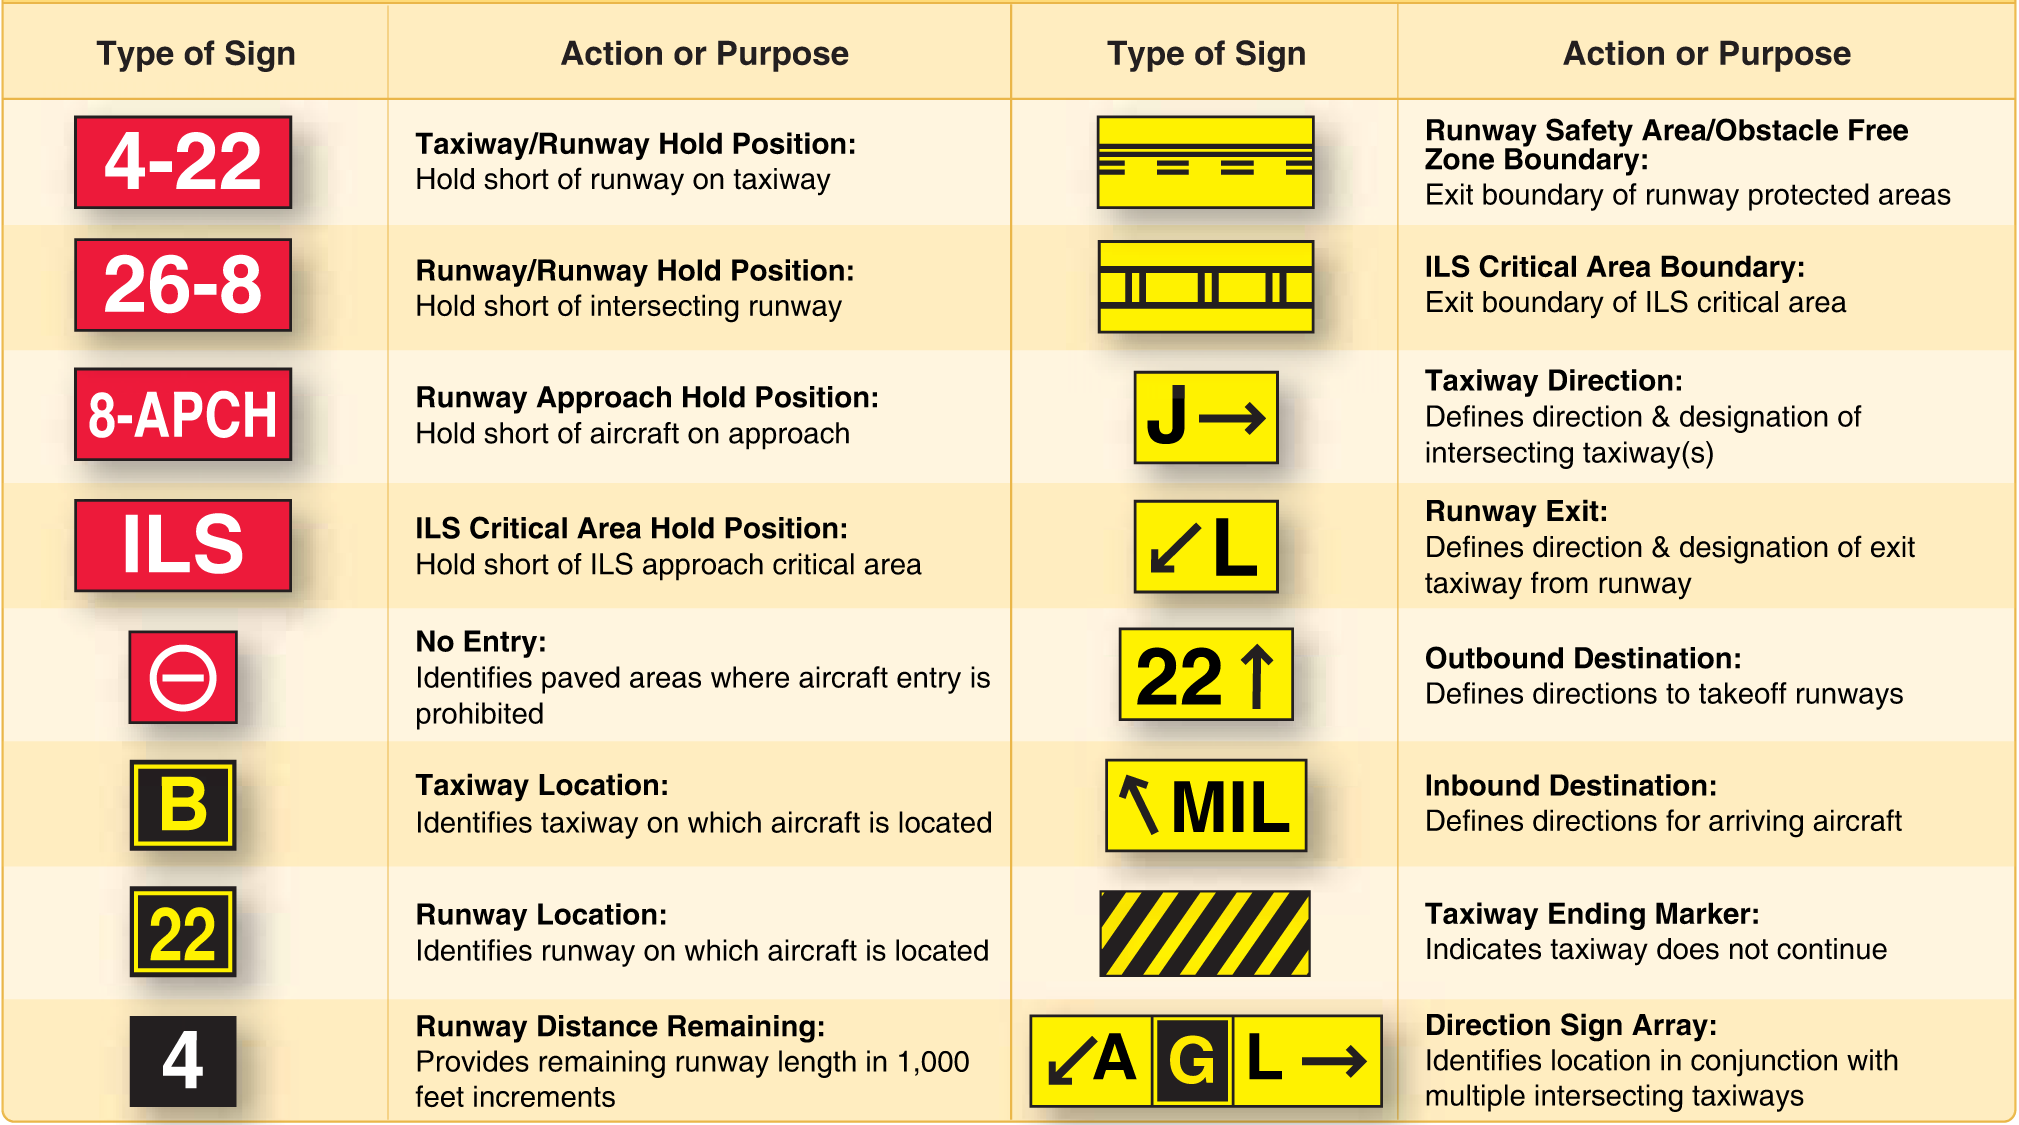 Figure 3. Airport signs.